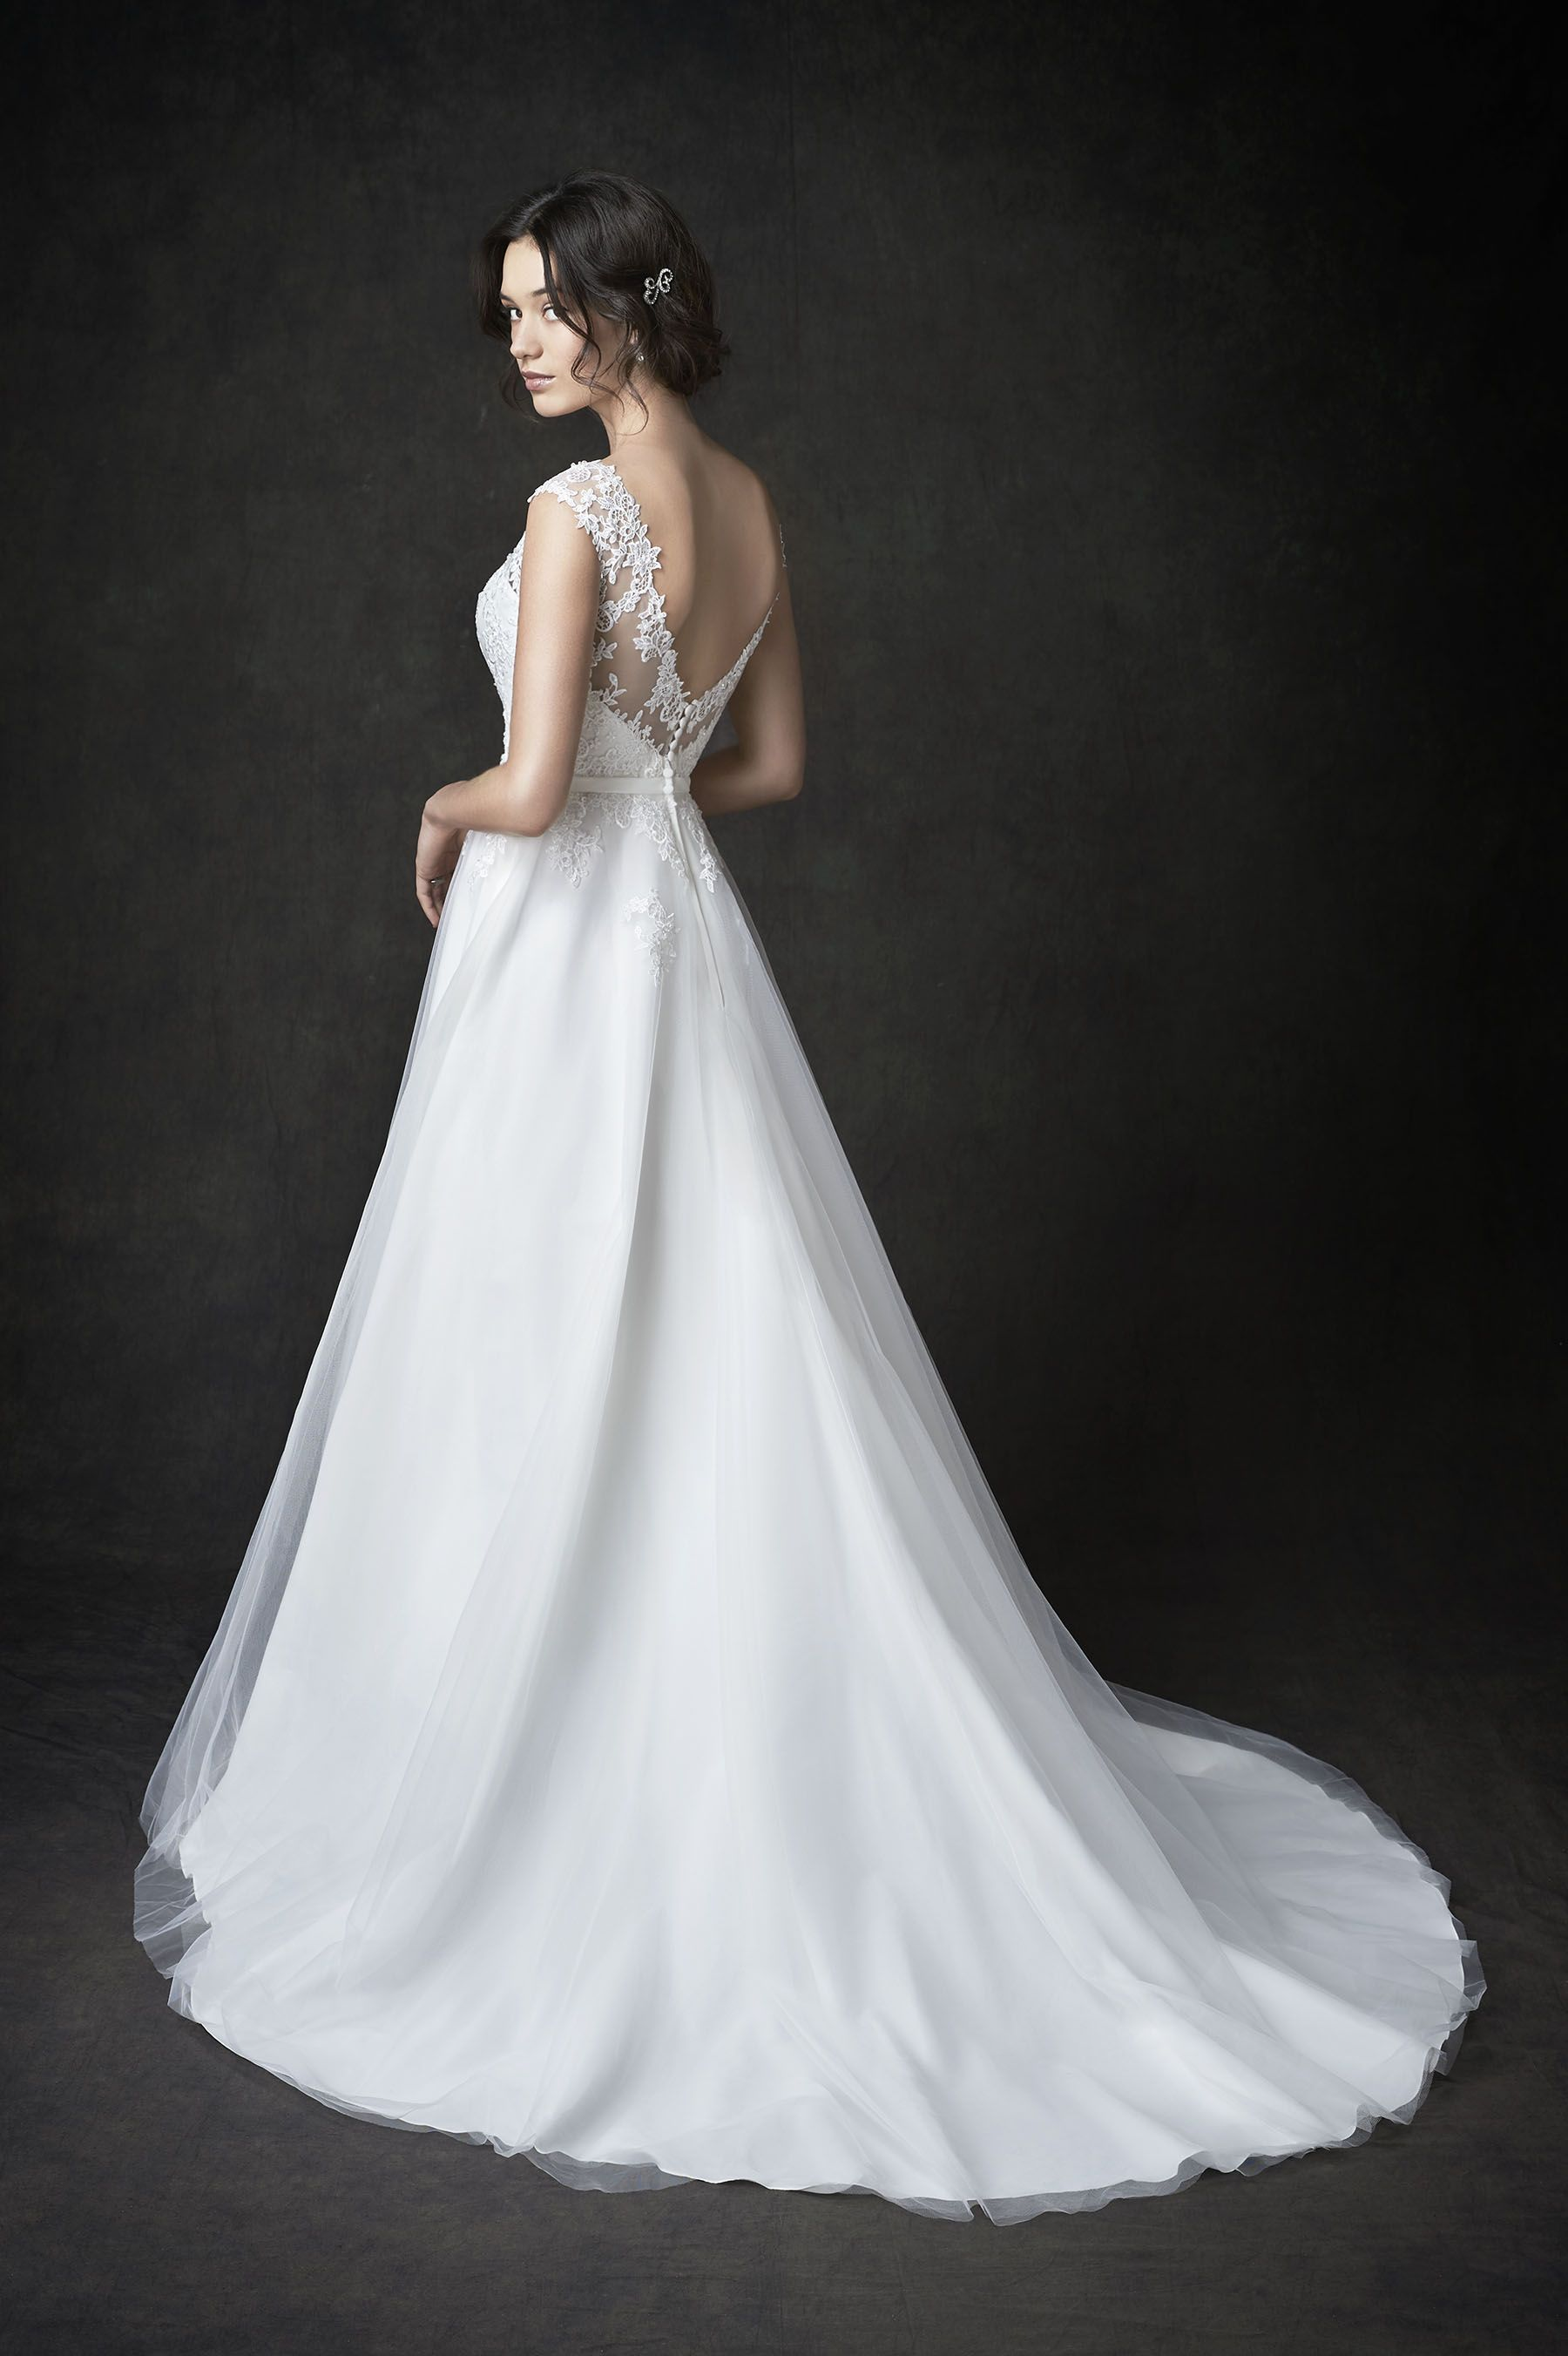 Gallery Style GA2273 | gorgeous lace and netting bridal gown with illusion lace v-back | romantic garden wedding | Kenneth Winston wedding dress